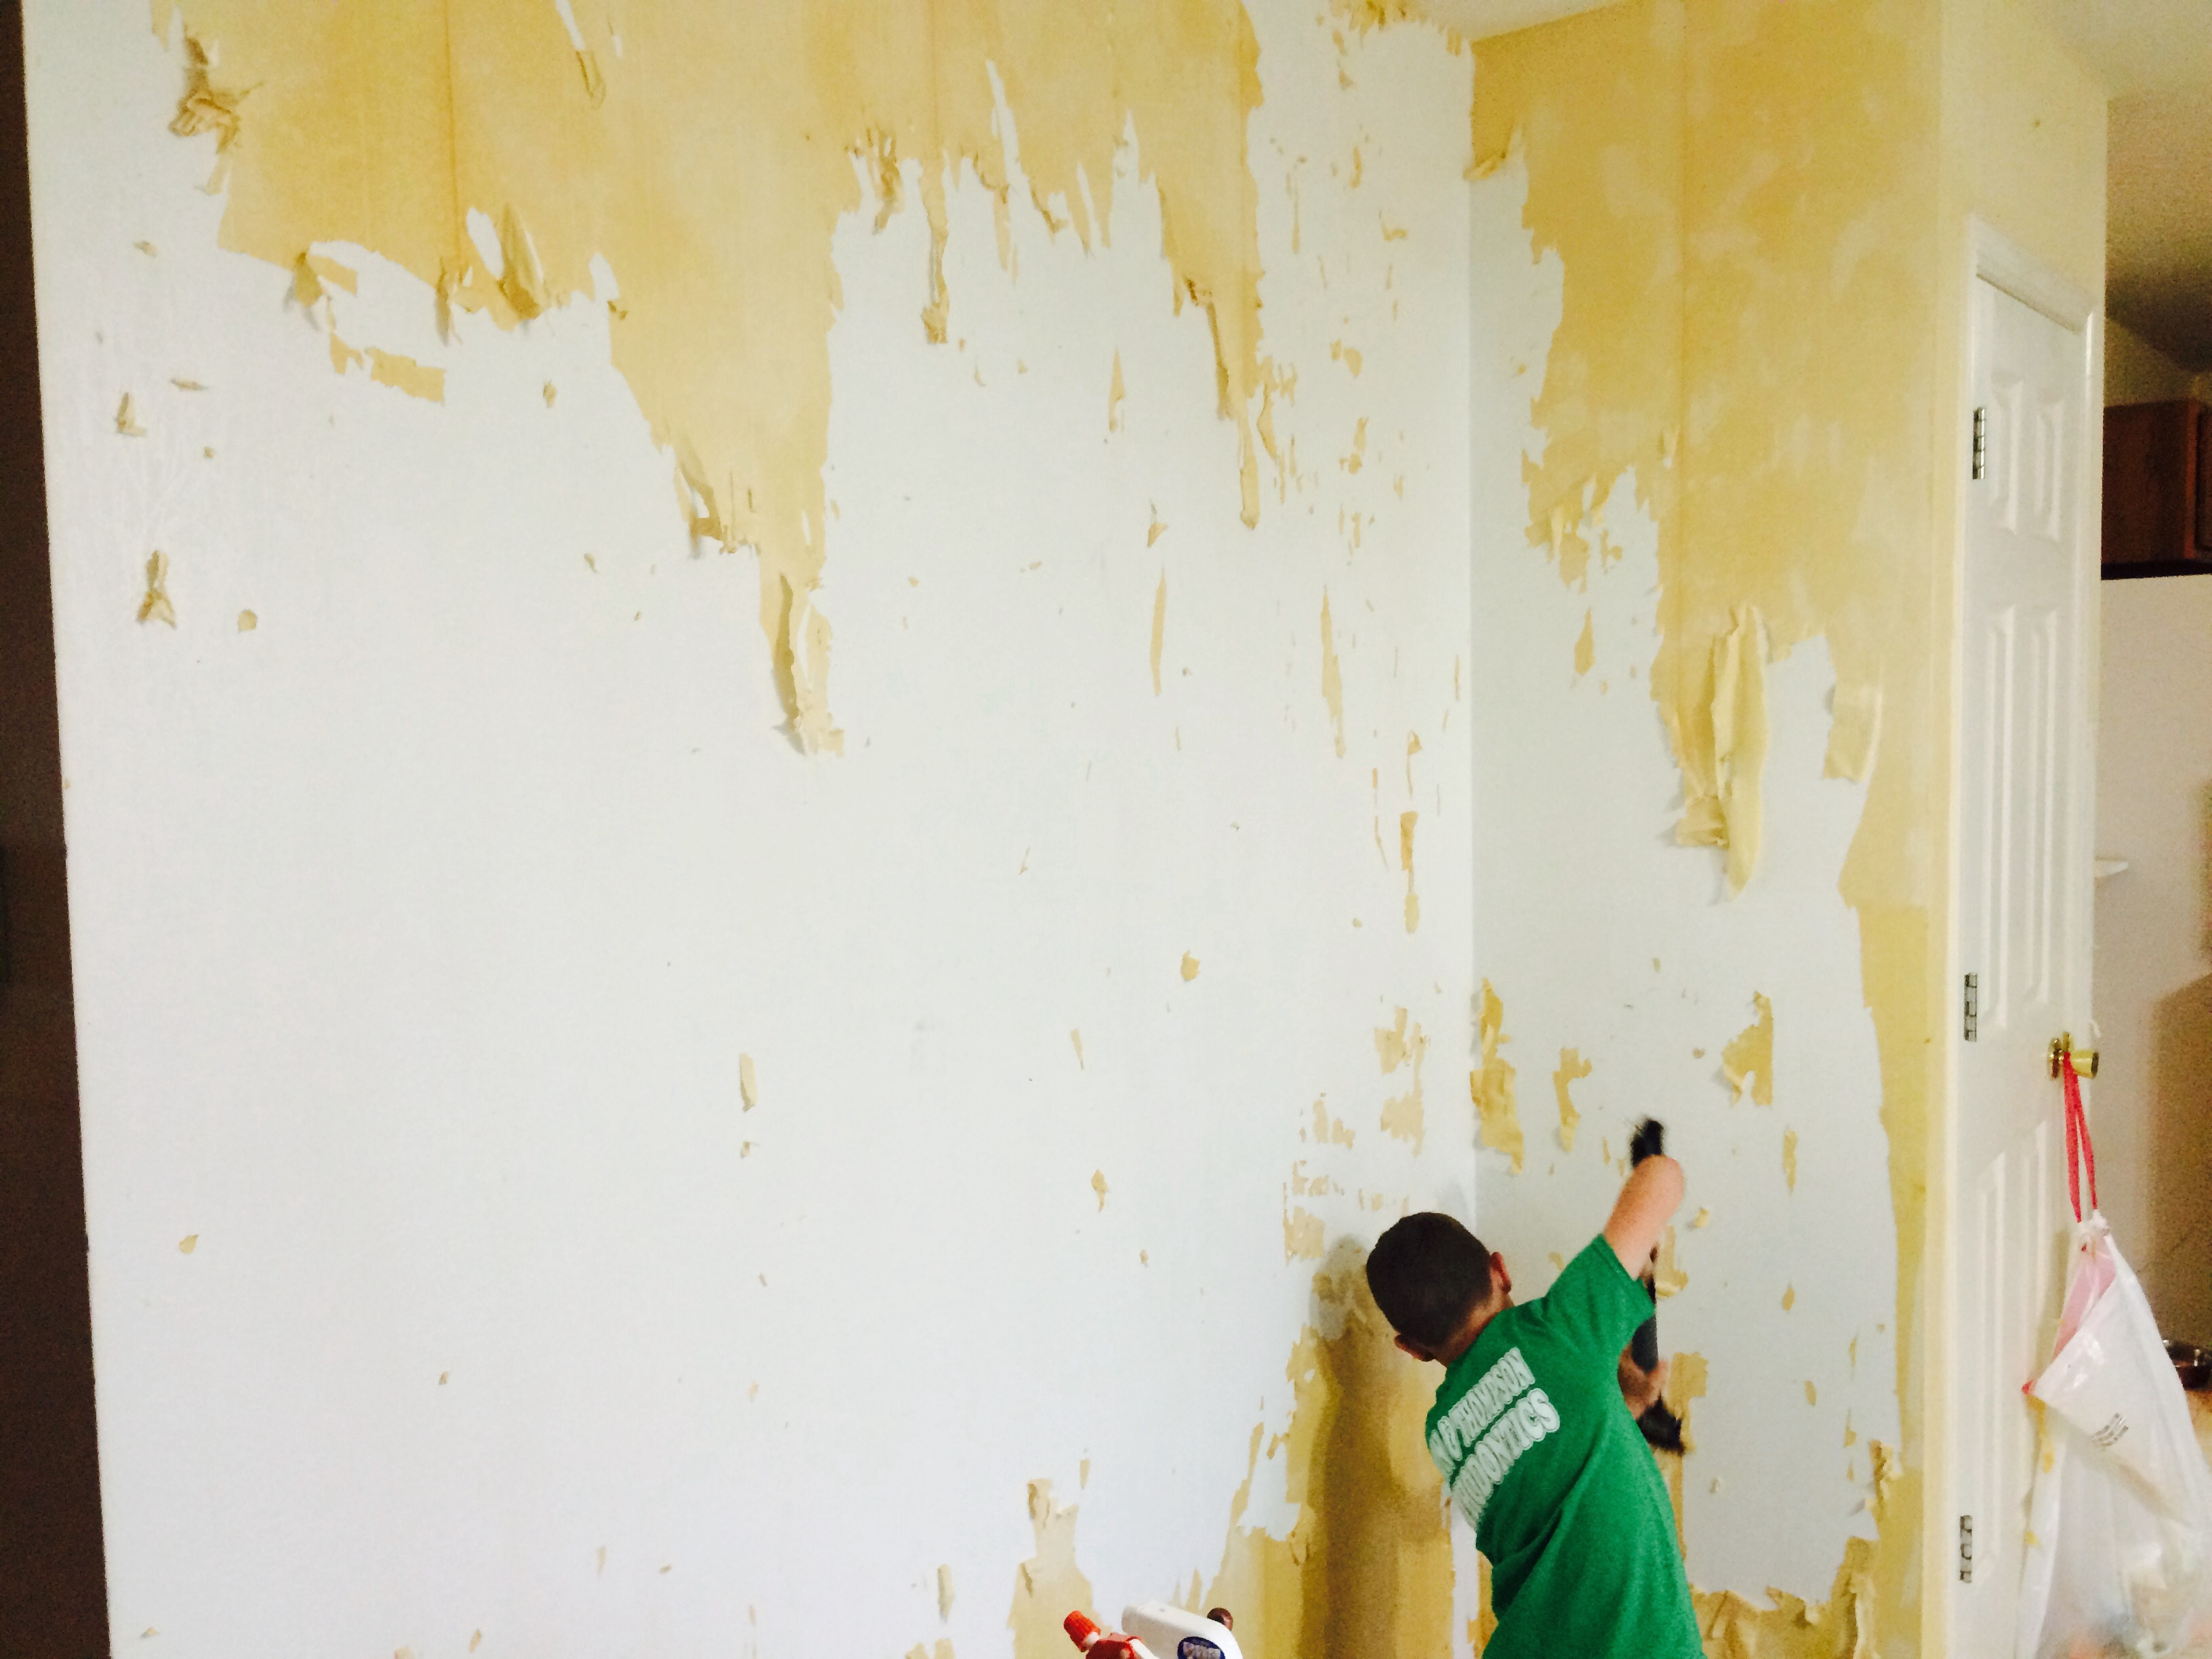 How To Get Wallpaper Off A Wall